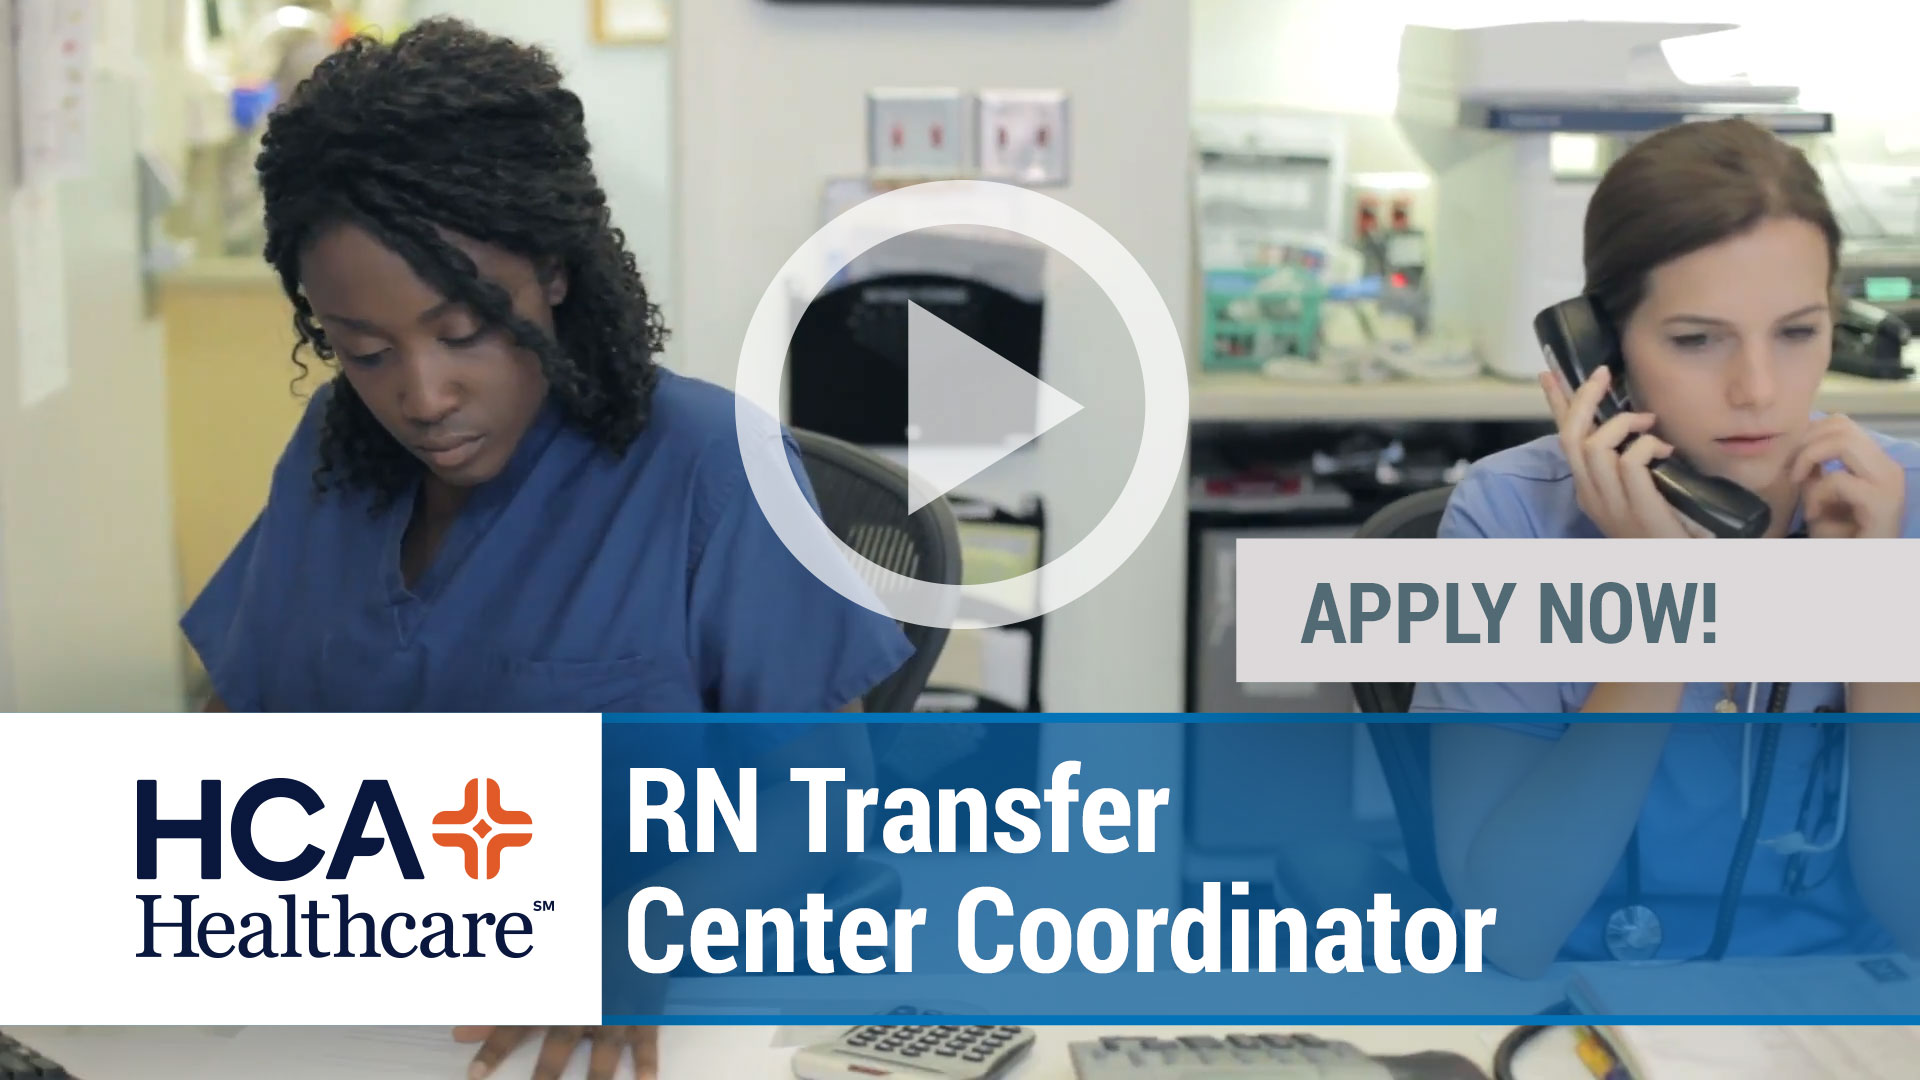 Watch our careers video for available job opening RN Patient Placement Coordinator in TBD